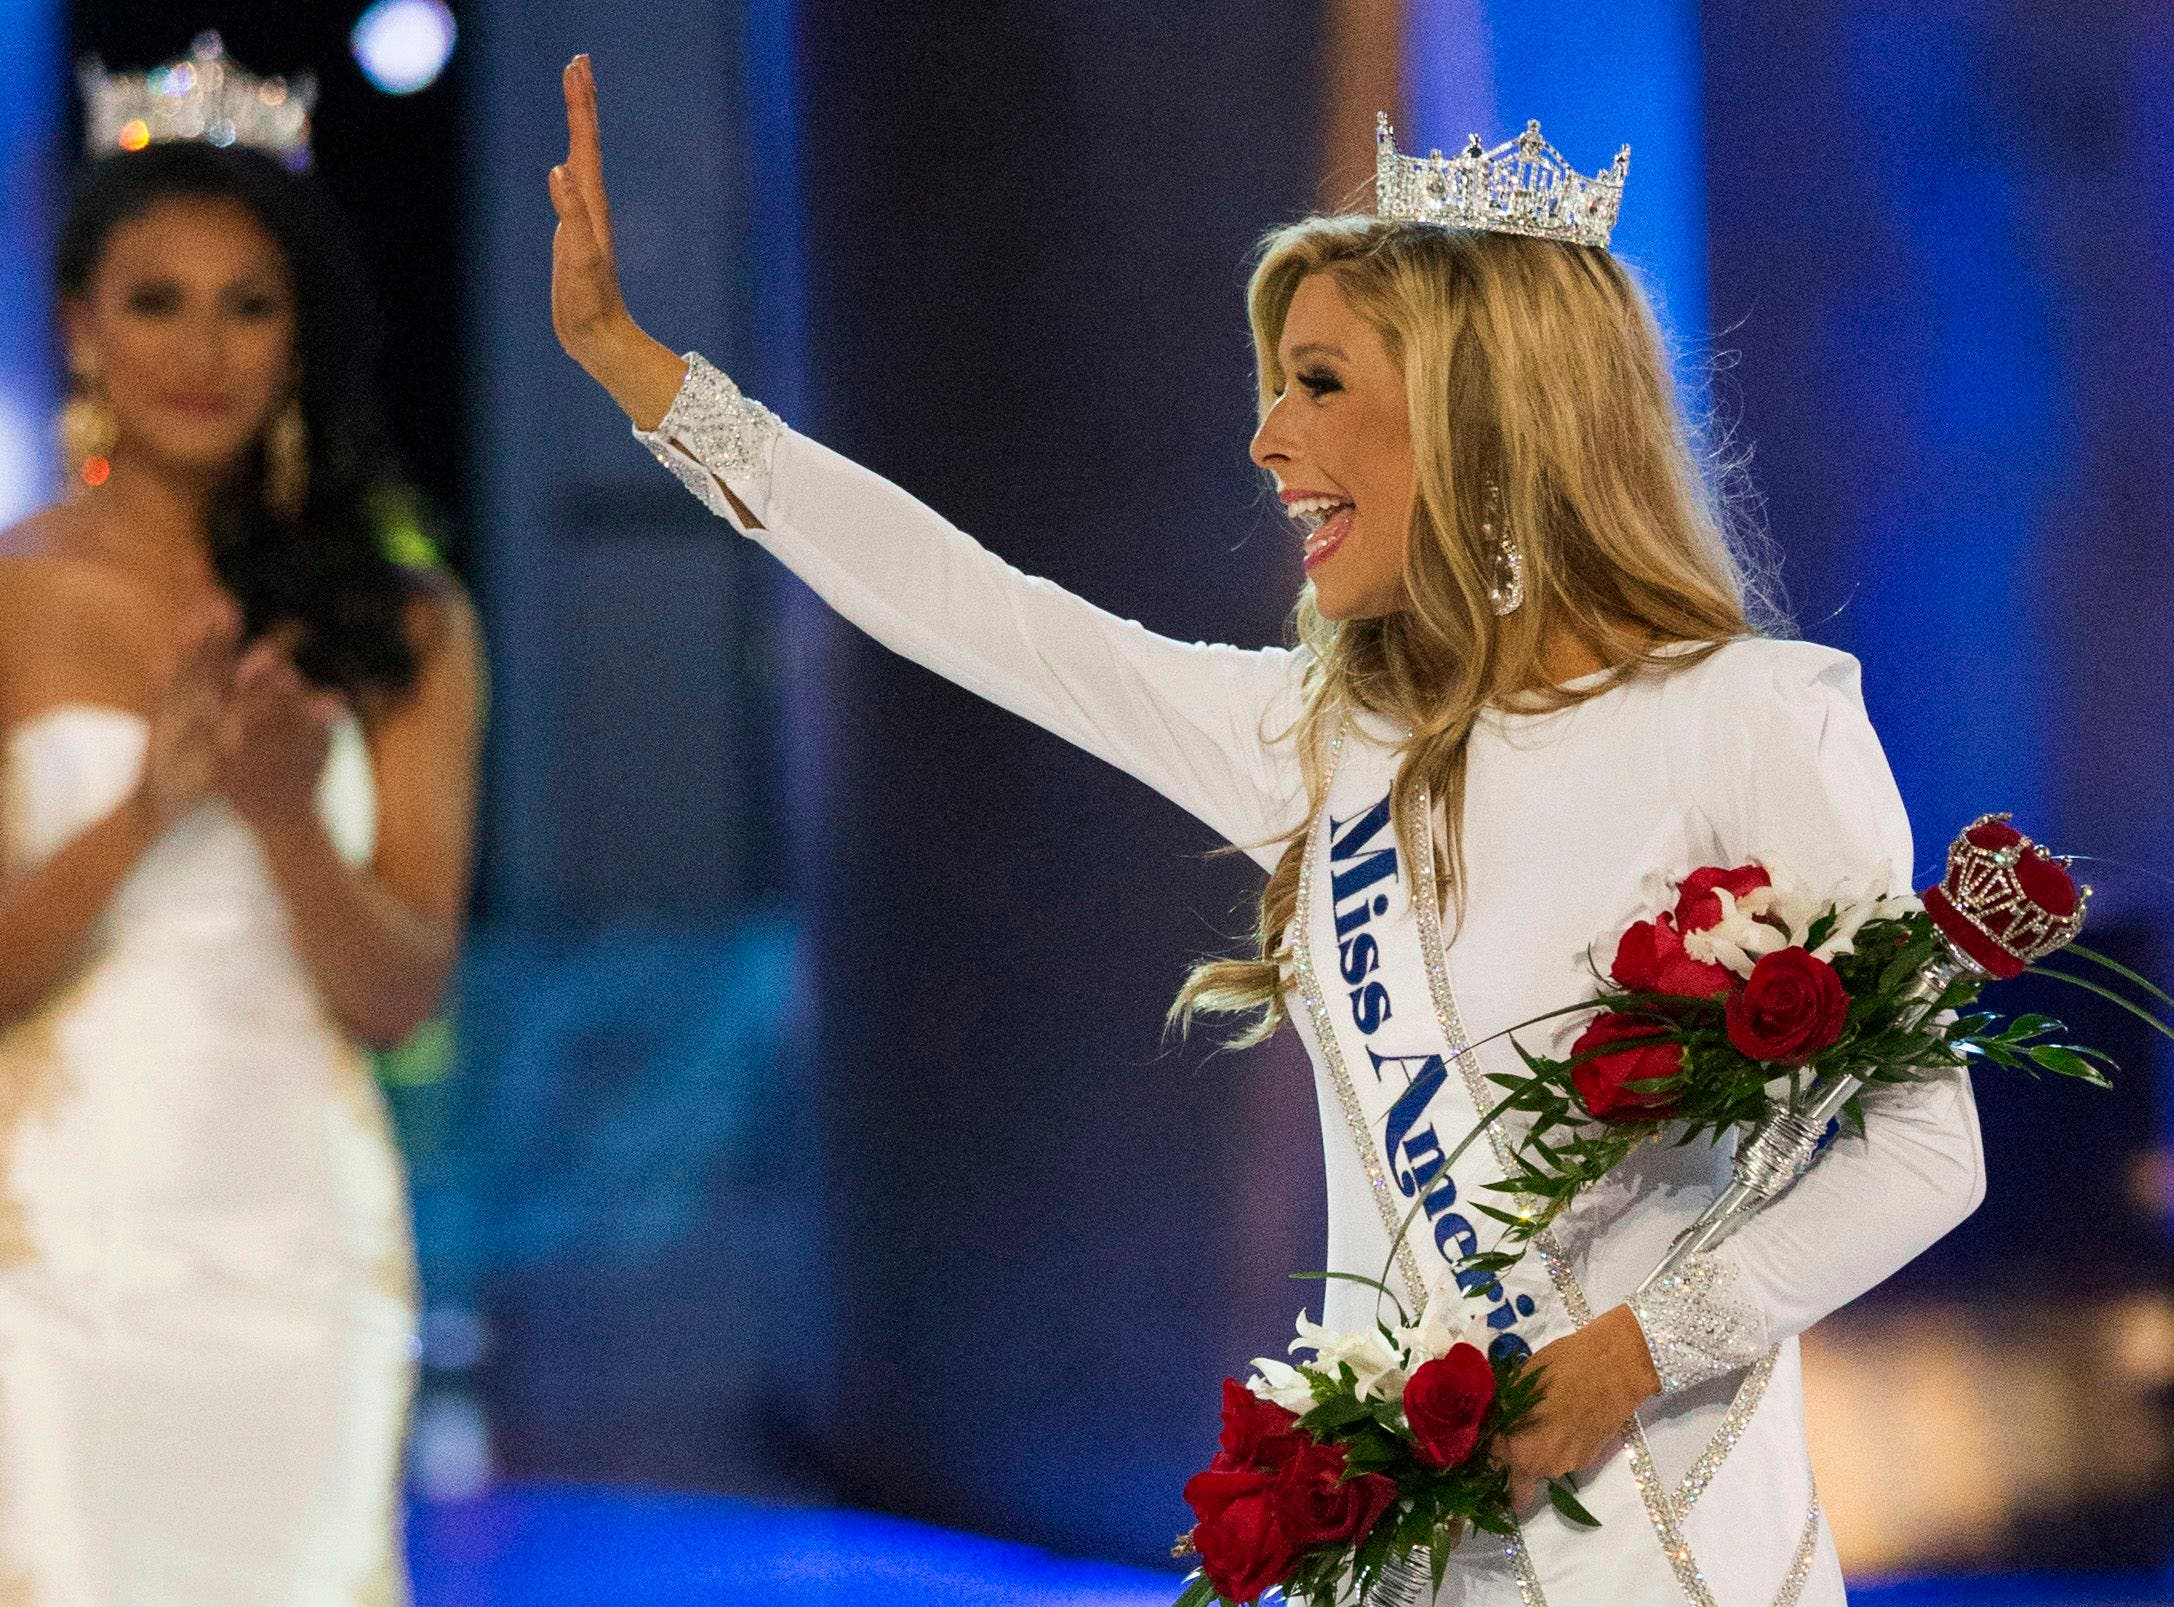 Miss New York Kira Kazantsev (R) waves near Miss America 2014 Nina Davuluri after she was crowned as the winner of the 2015 Miss America Competition in Atlantic City, New Jersey September 14, 2014. (Reuters)